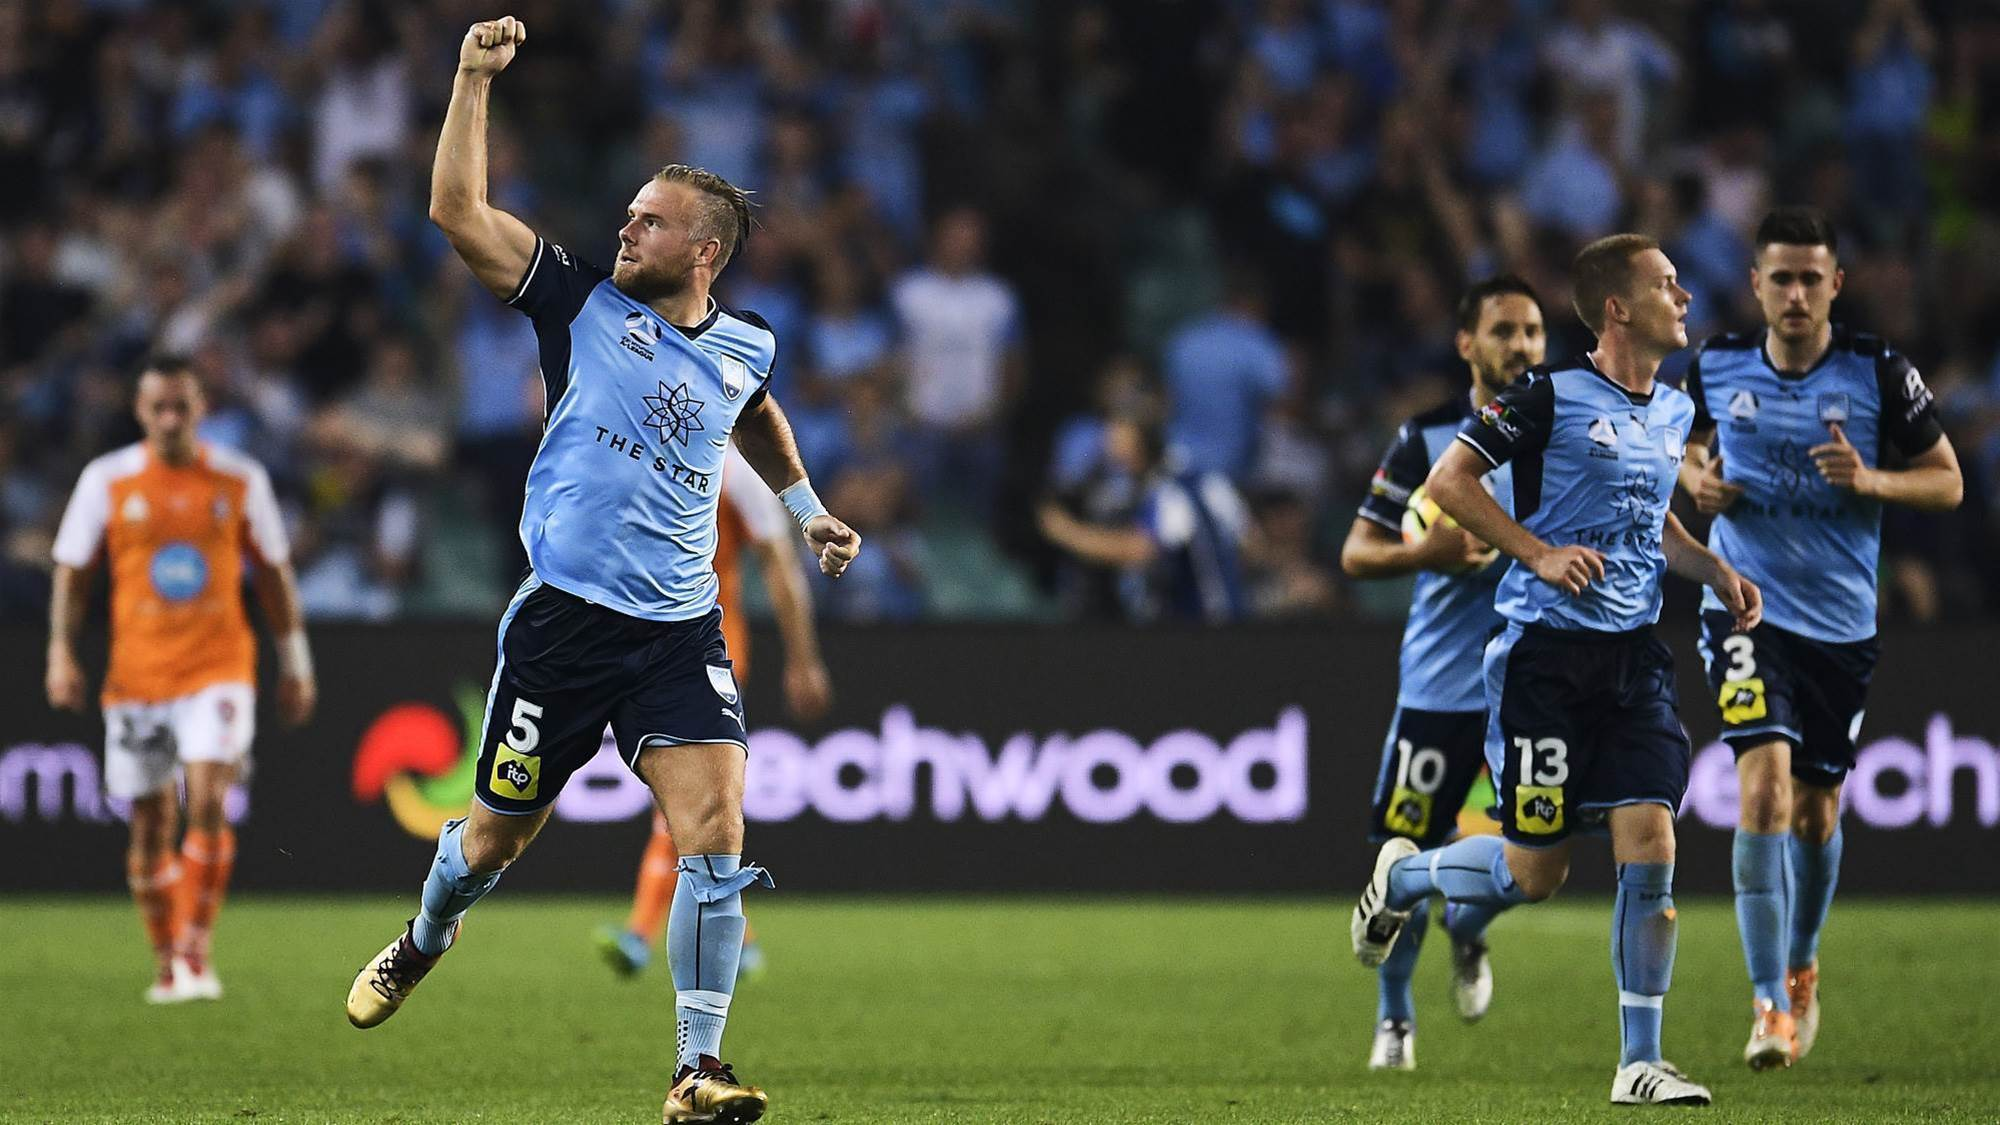 Arnold: Sydney has the quality to bounce back